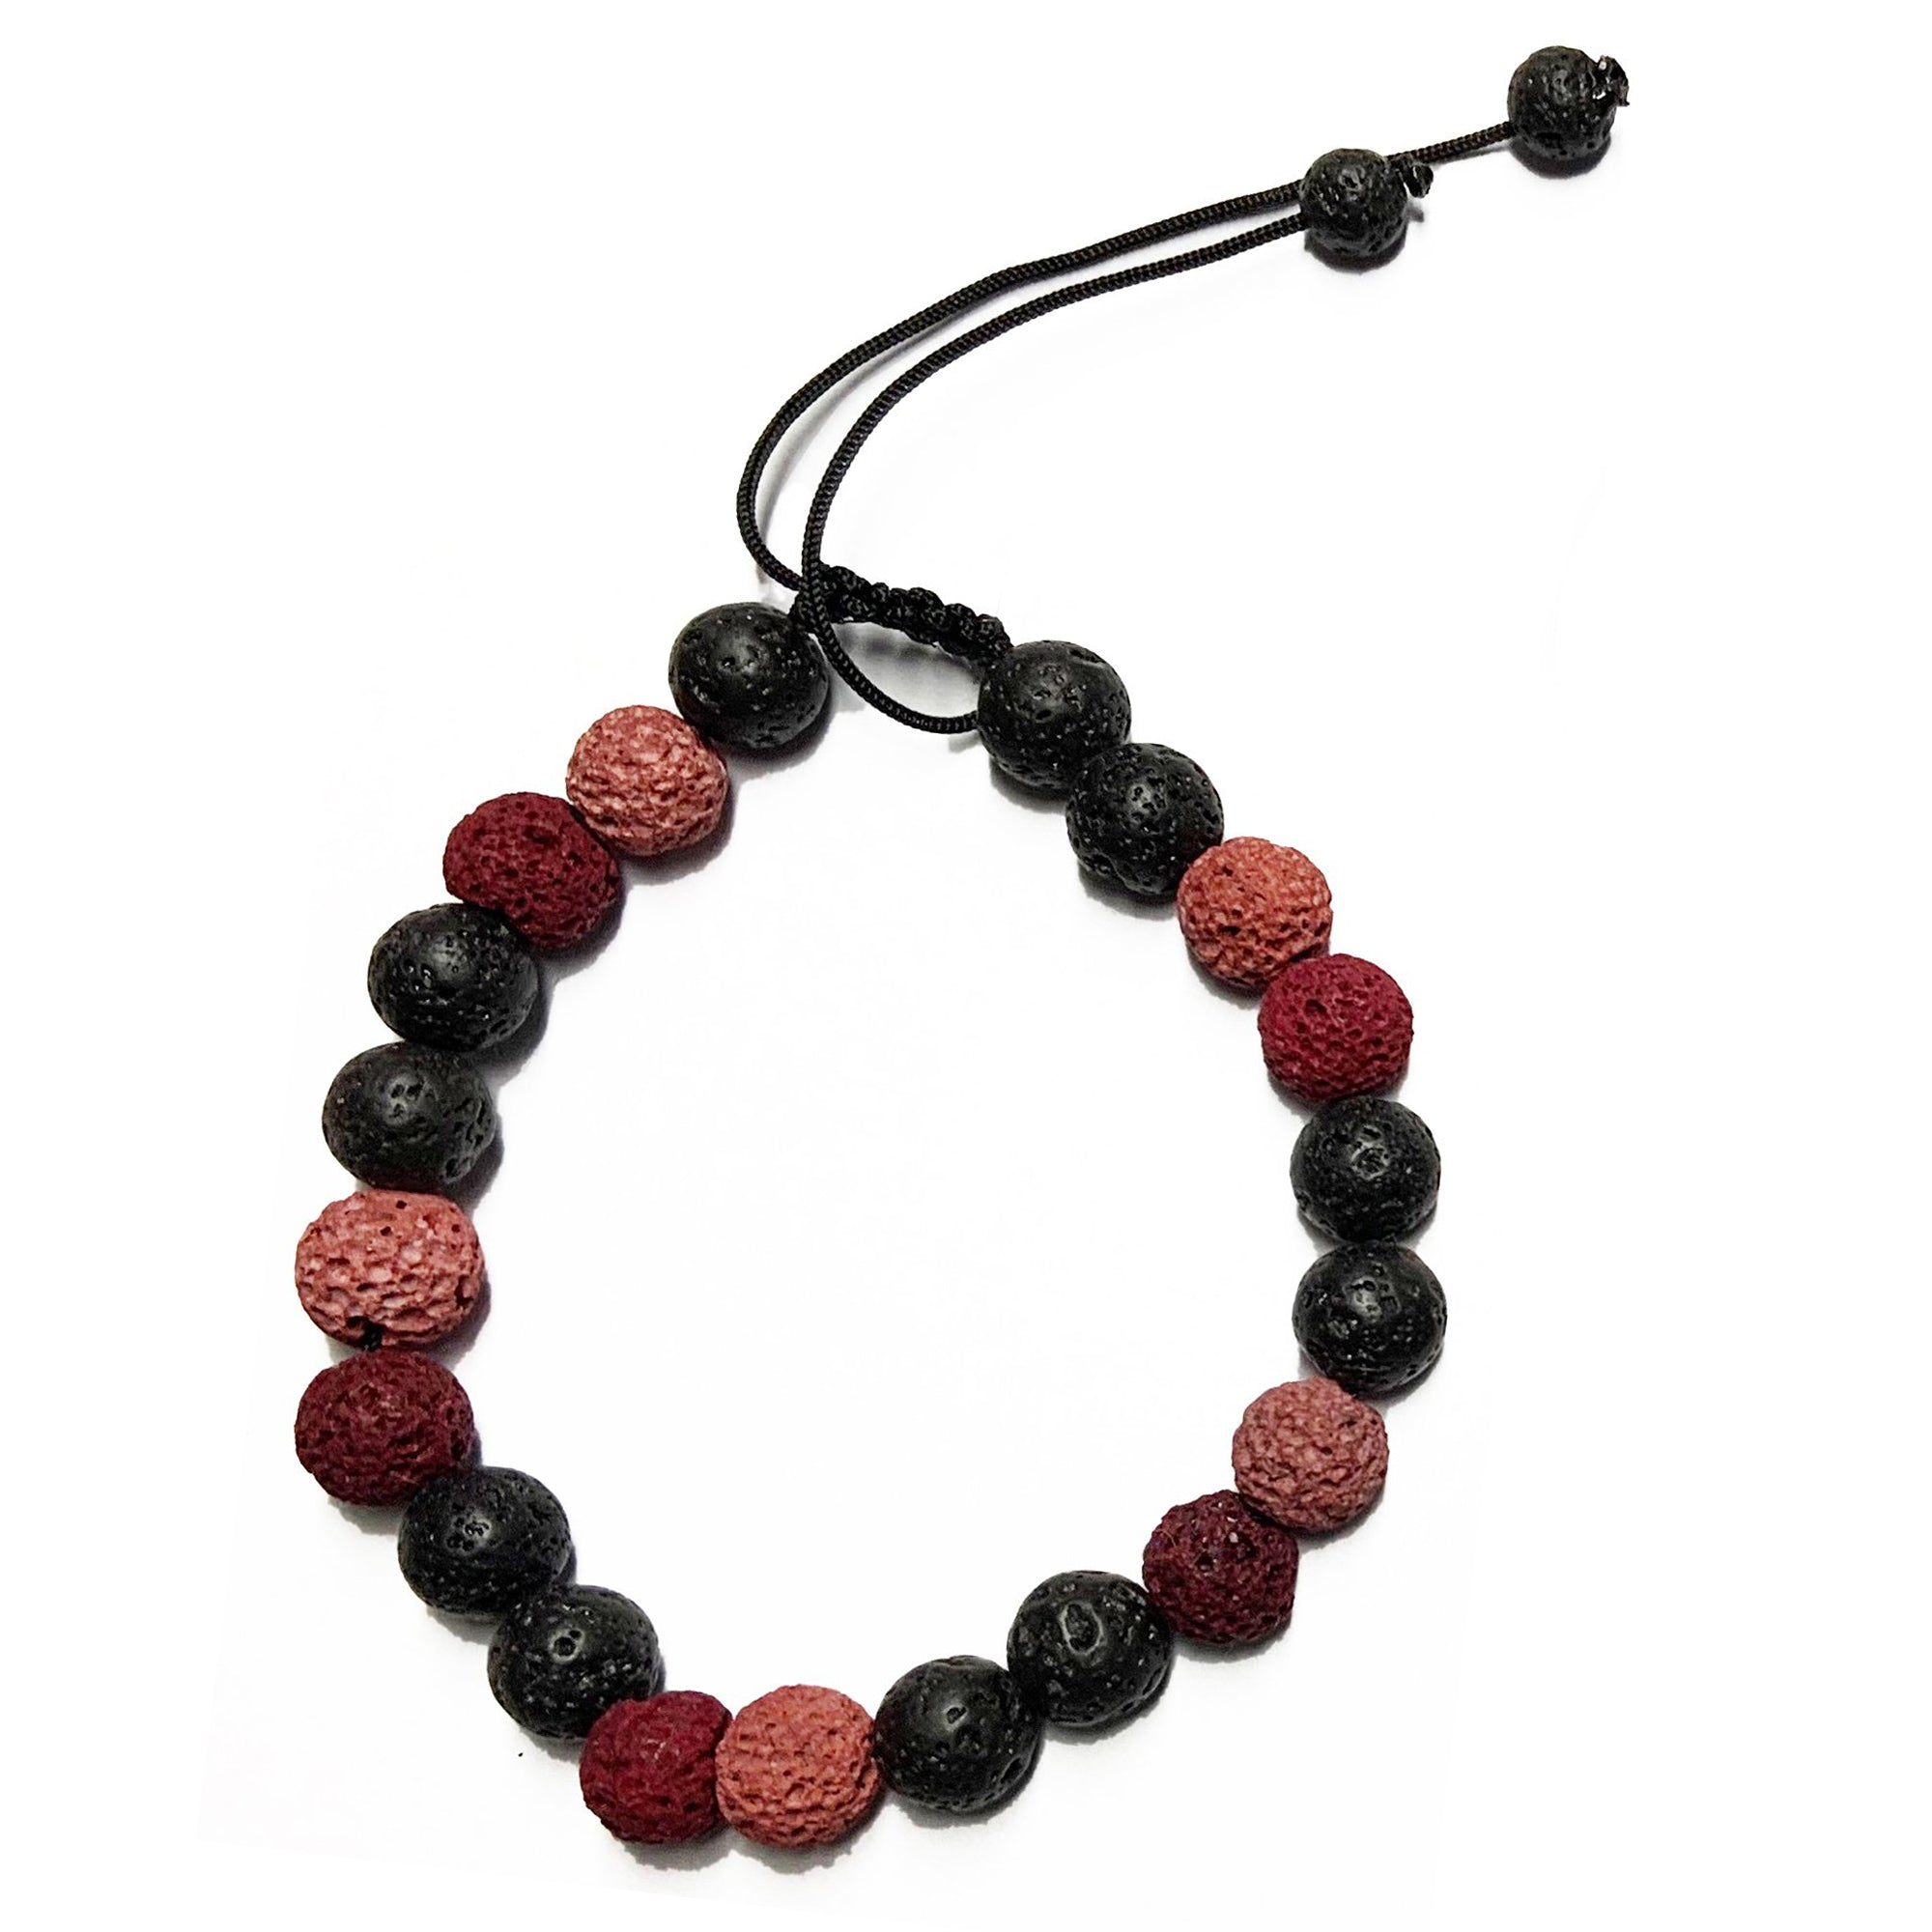 Bead bracelets for women in different colors